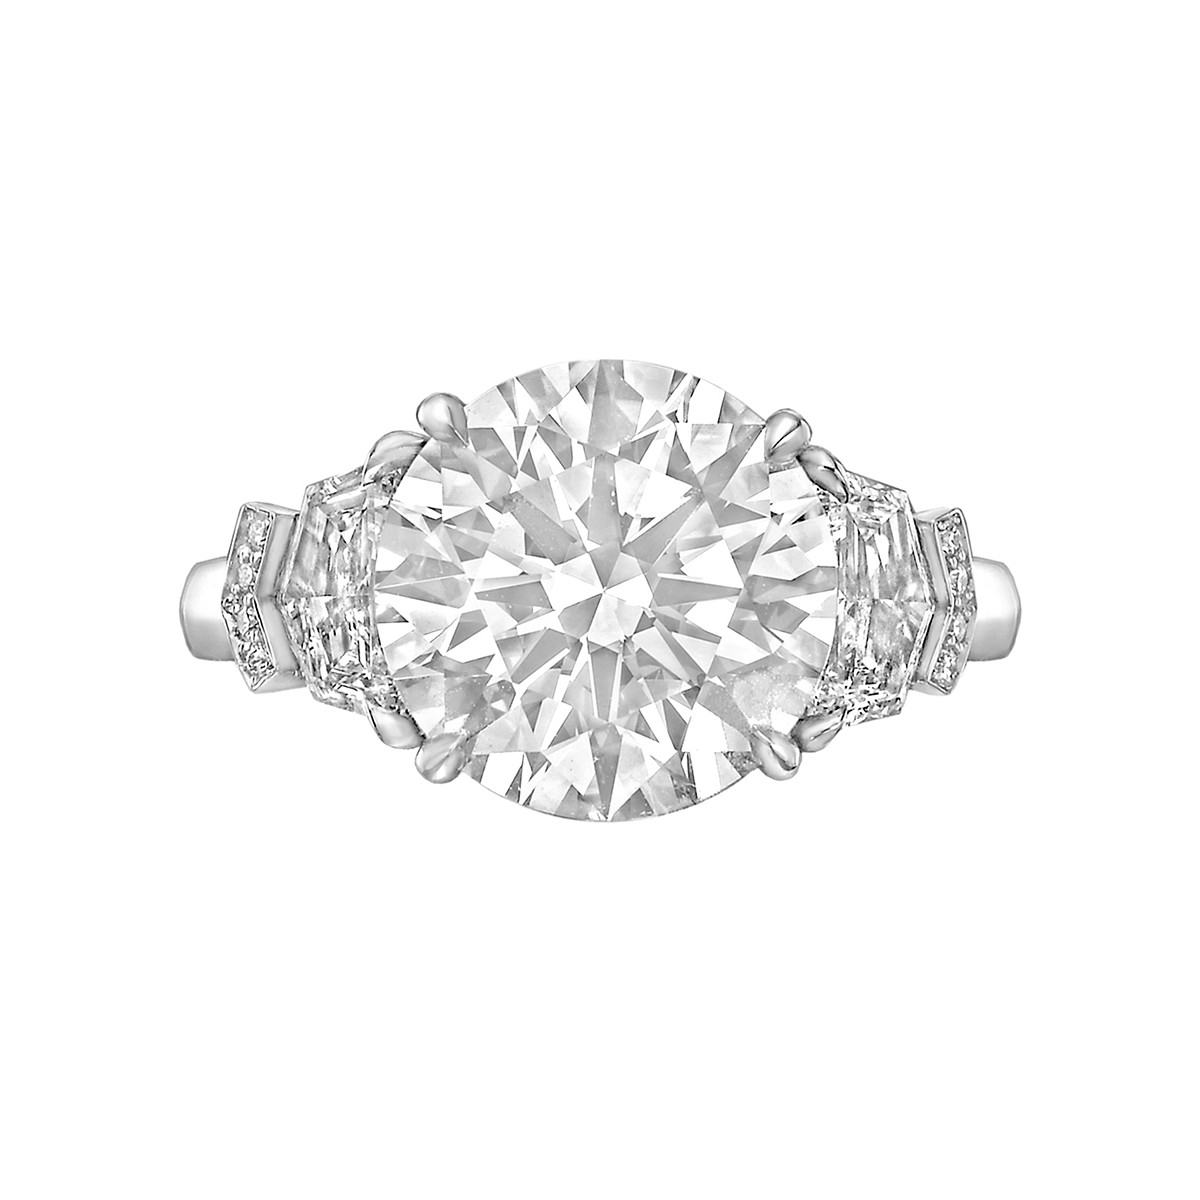 4.36 Carat Round Brilliant Diamond Ring